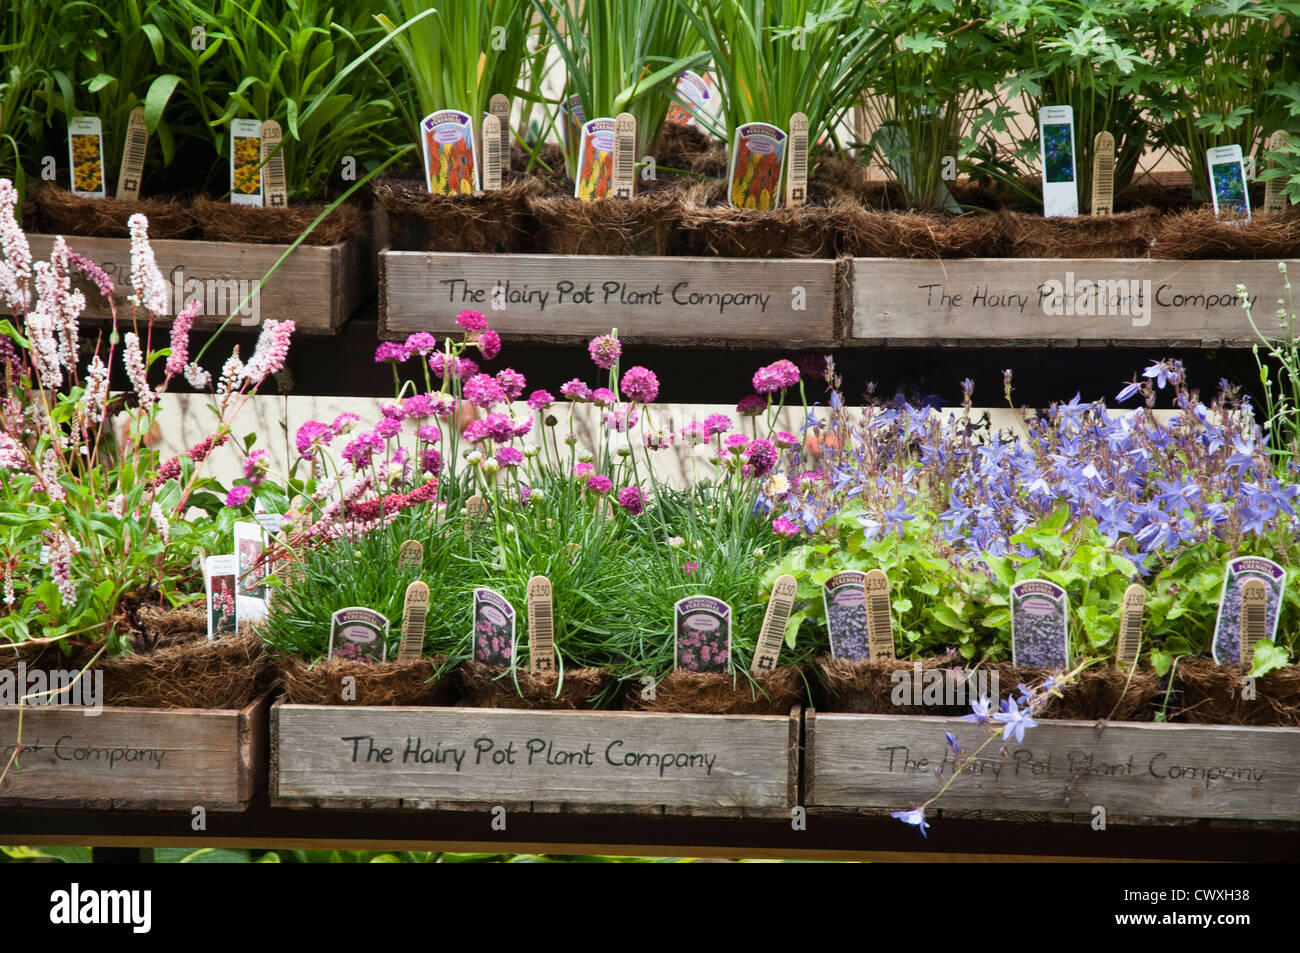 Hairy Pot Plant Company - herbaceous plants for sale grown within biodegradeable pots. UK. - Stock Image